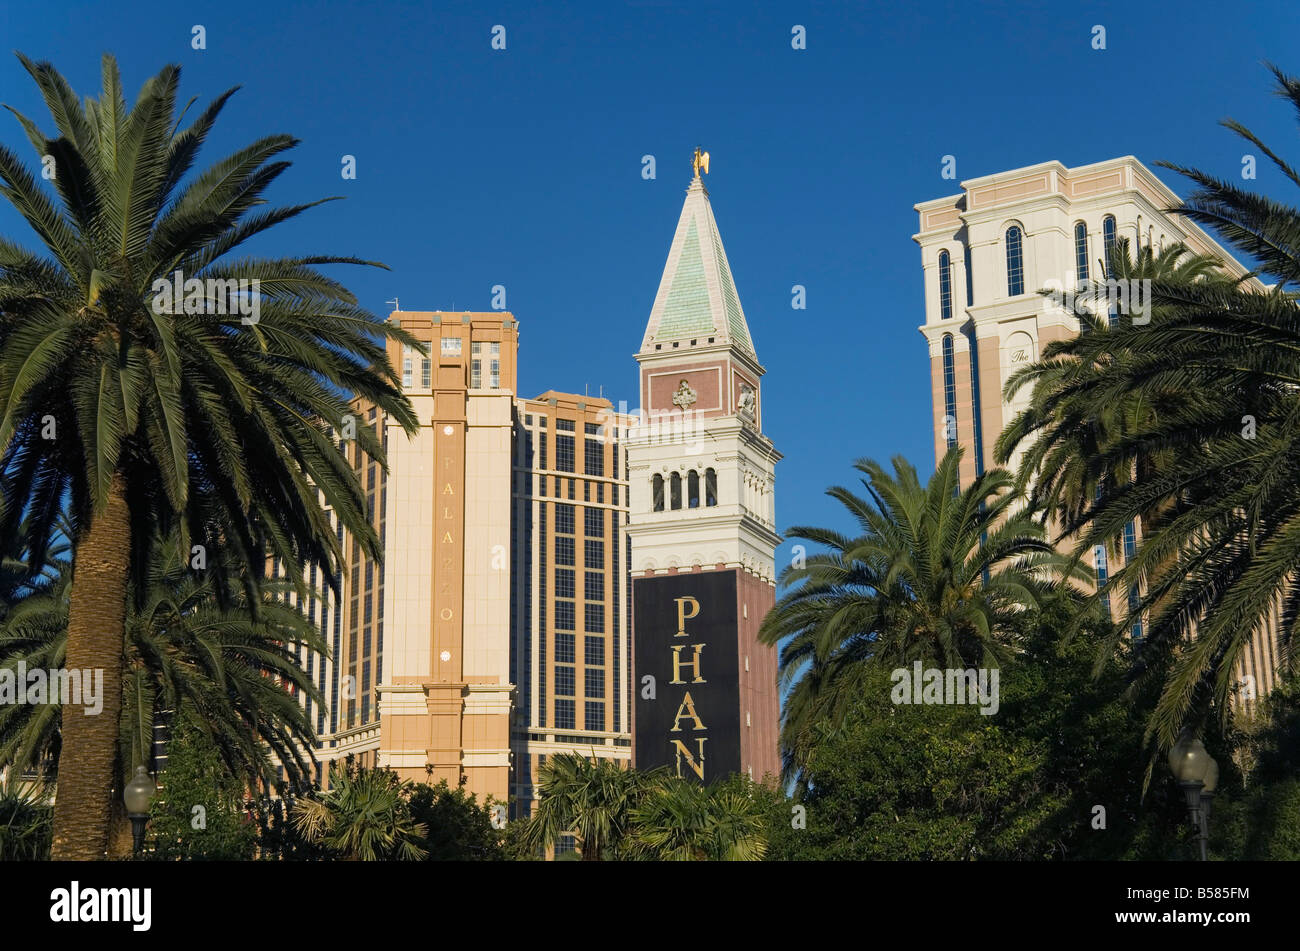 Venetian tower with Venetian Hotel on right, on the Strip (Las Vegas Boulevard), Las Vegas, Nevada, United States - Stock Image